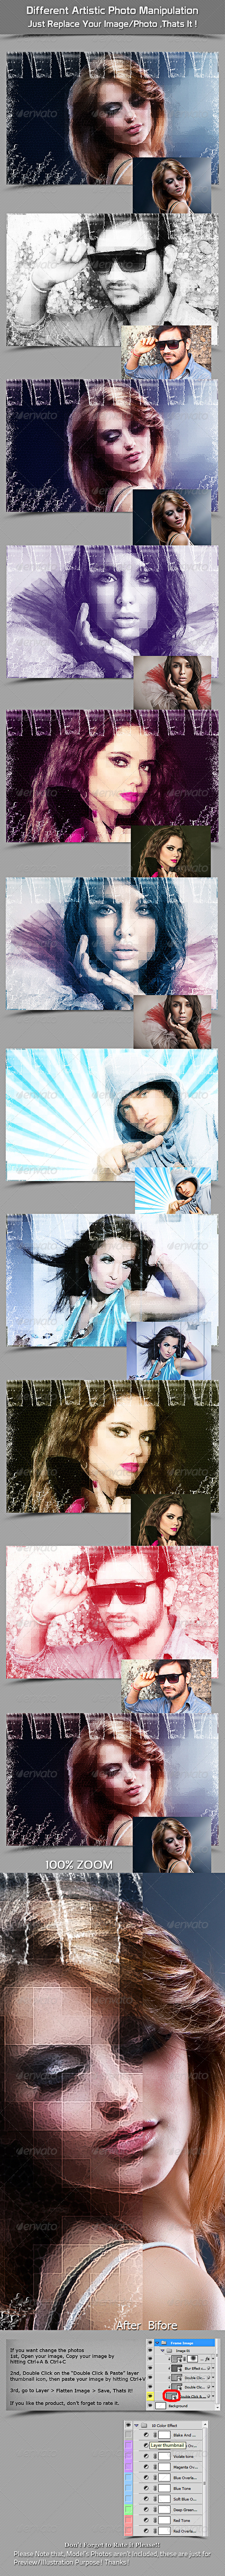 Different Artistic Photo Manipulation - Photo Templates Graphics